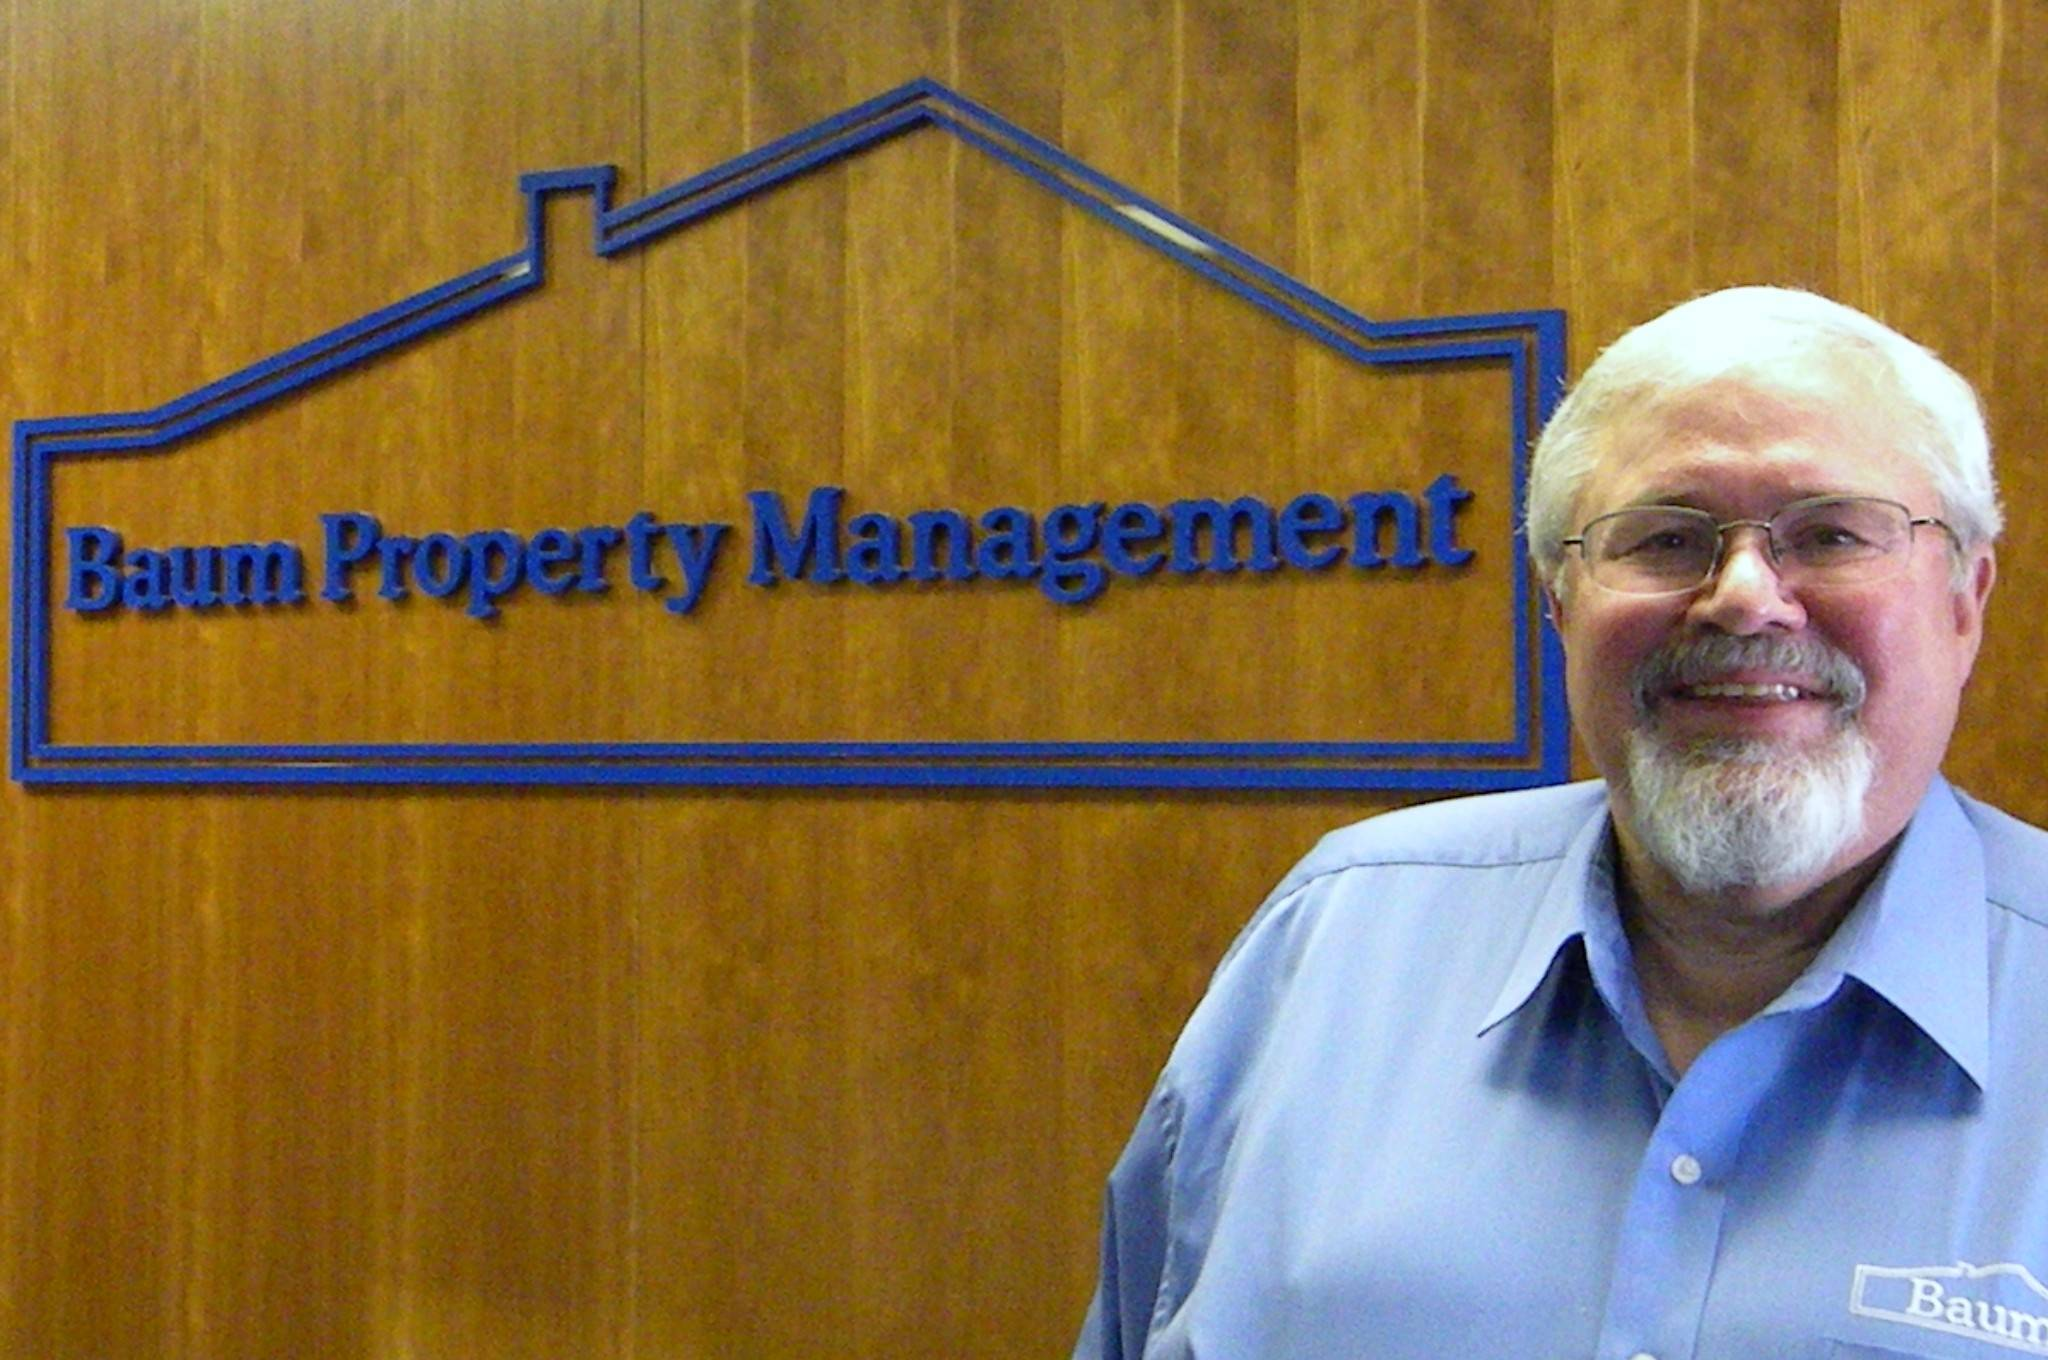 Baum Property Management's founder & president, Michael D. Baum, PCAM